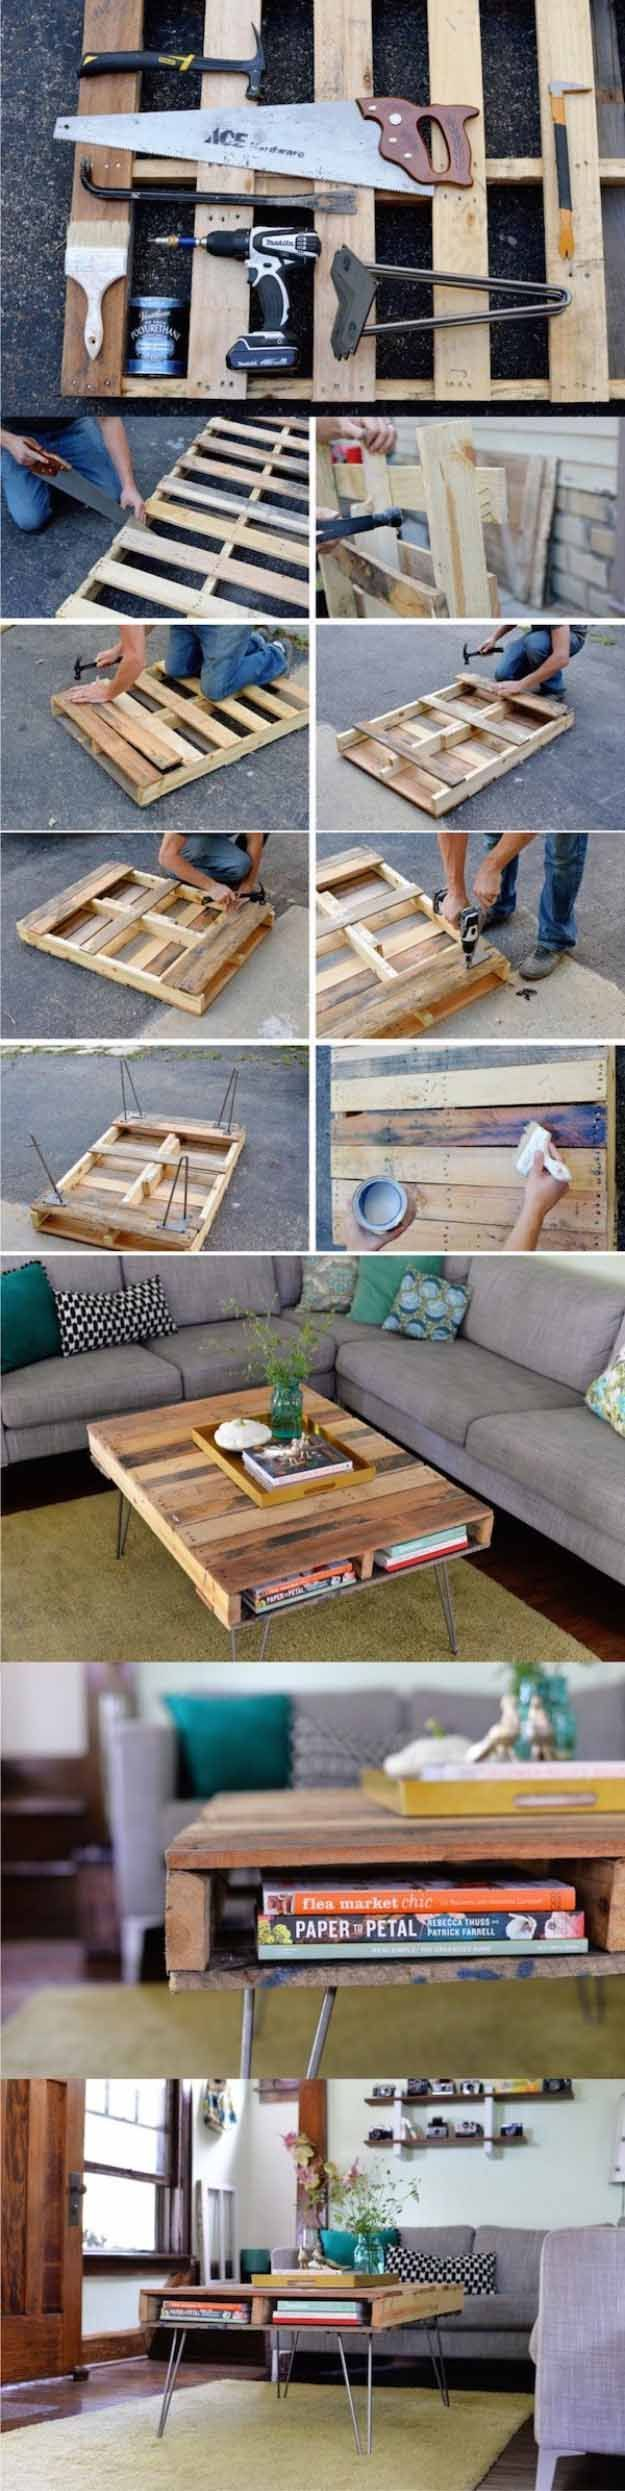 Easy DIY Home Decor Projects| DIY Pallet Furniture Tutorial | Cheap Coffee Table Ideas | DIY Projects and Crafts by DIY JOY  at diyjoy.com/...